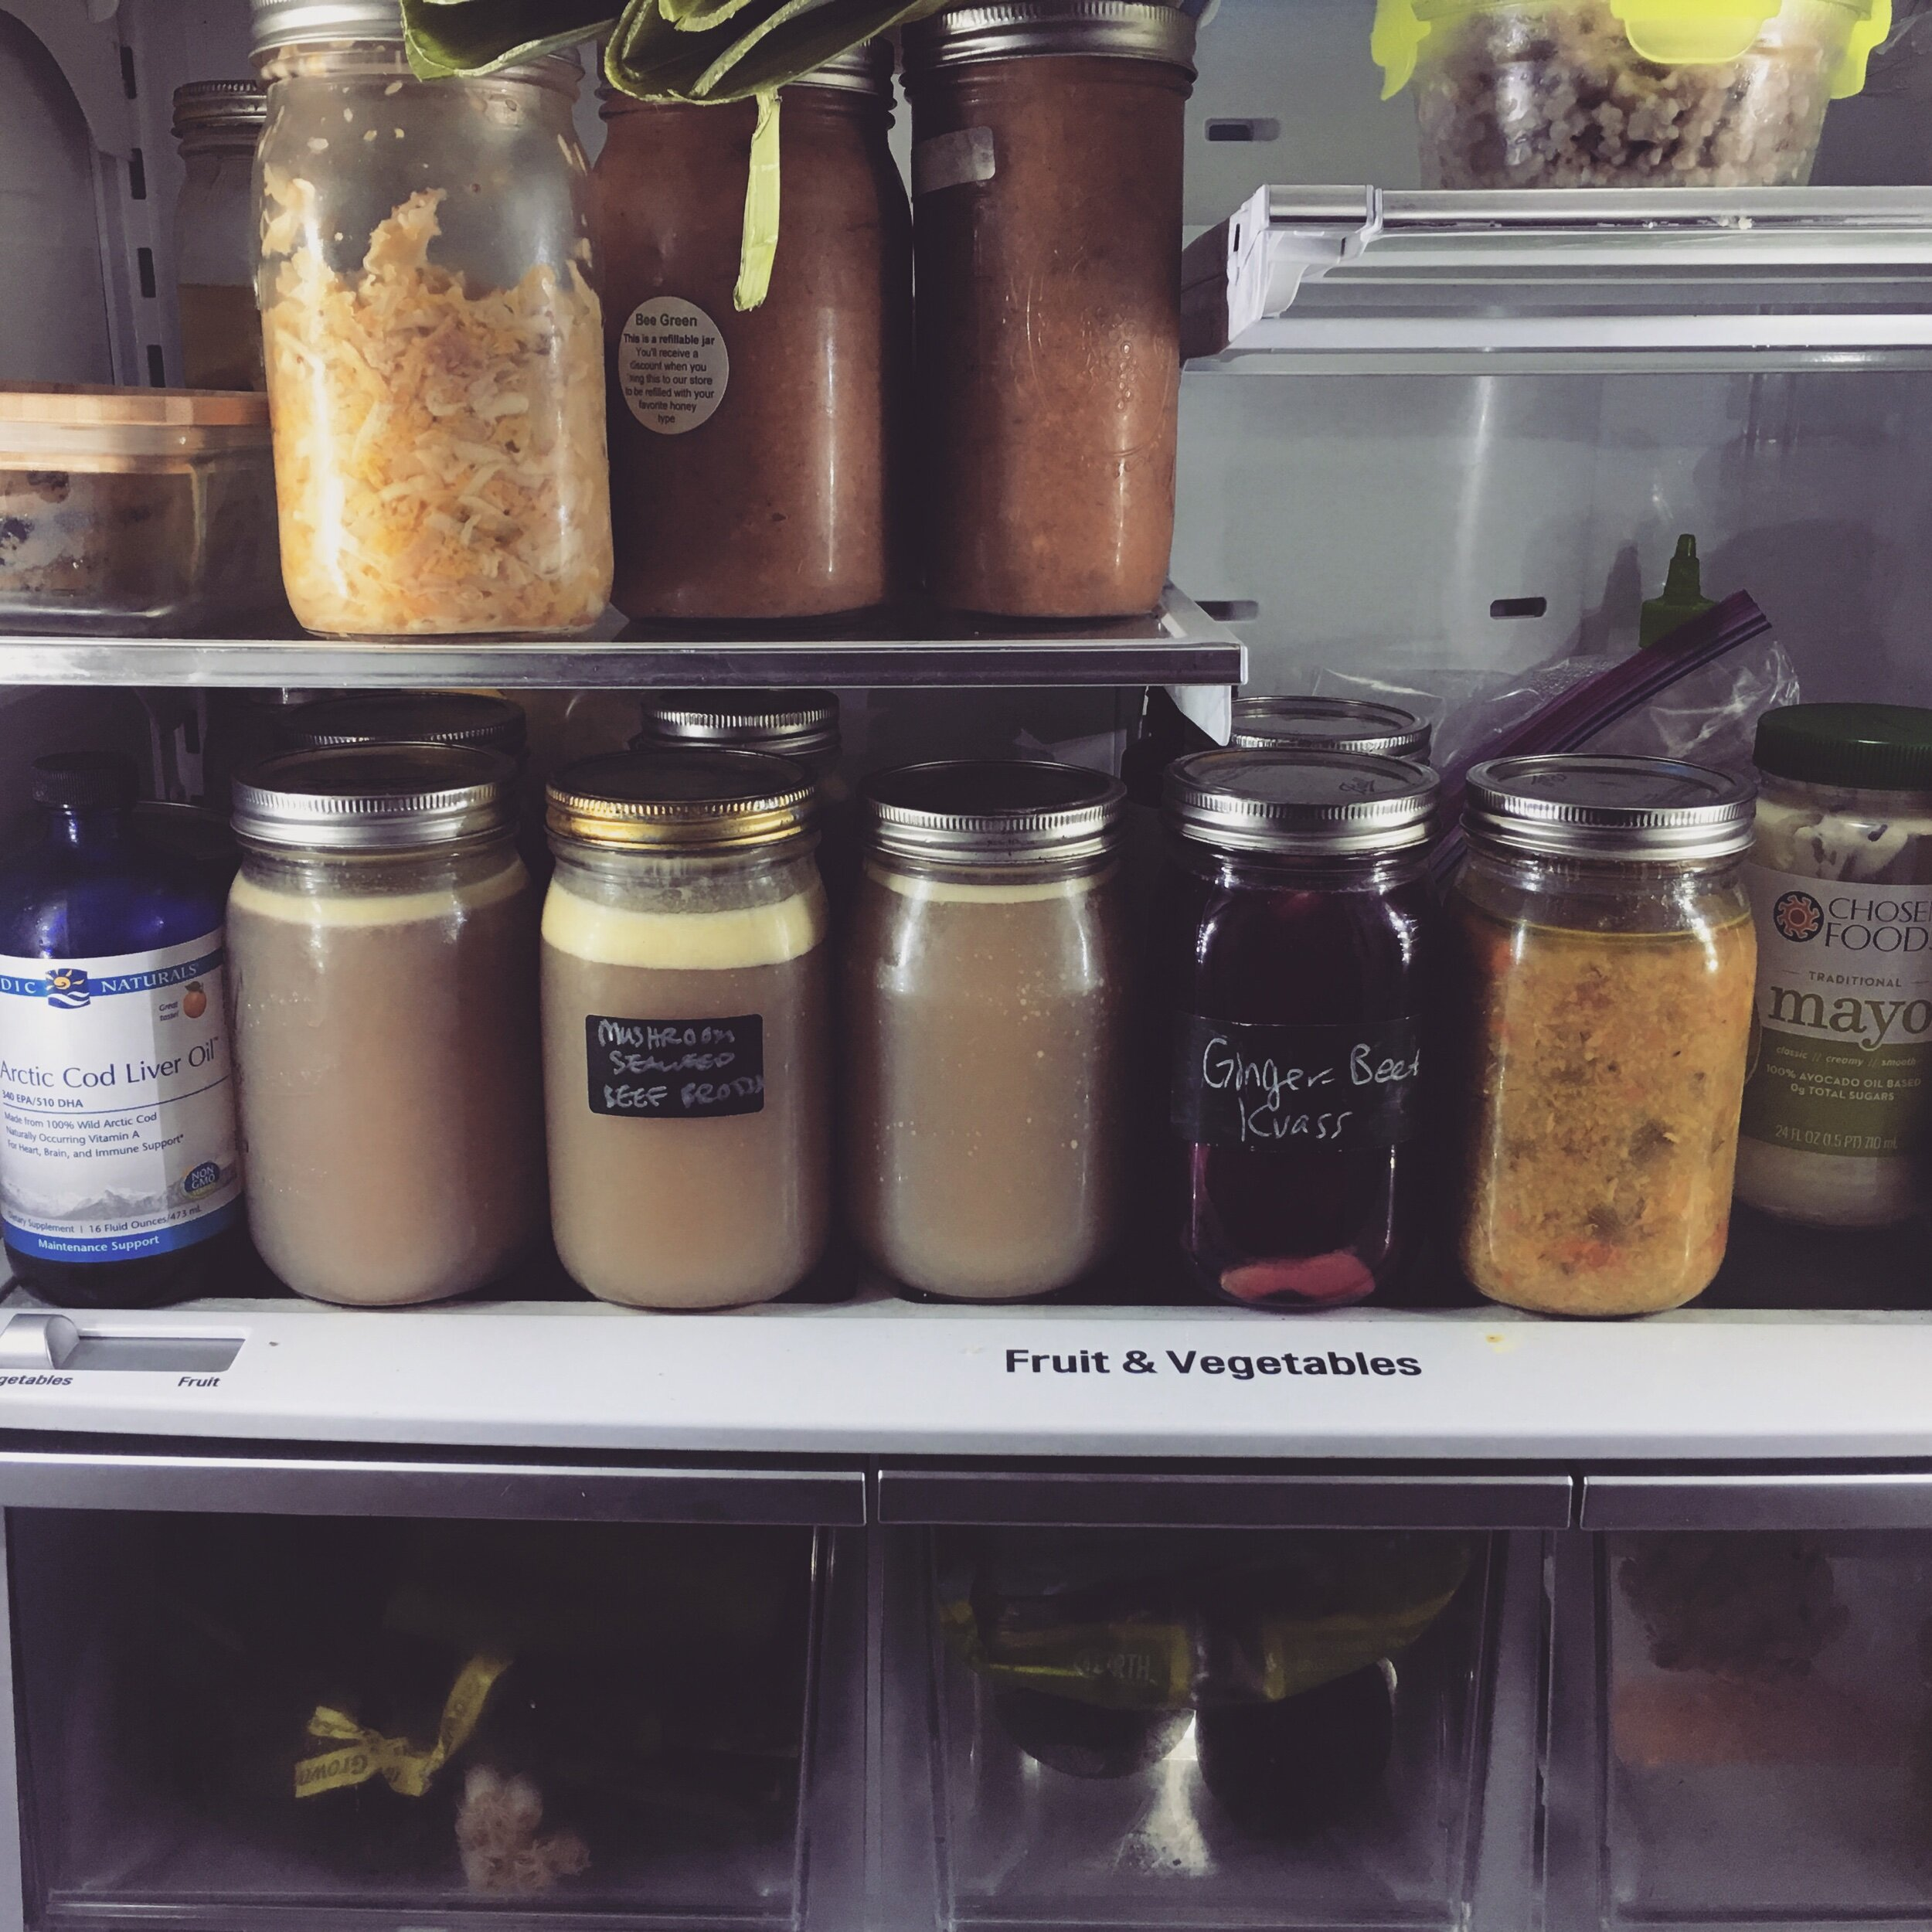 A current snapshot of my fridge, Contents in case you're interested (from top left): baked sweet potato, apple parsnip kraut, apple-quince sauce, leftover buckwheat, cod liver oil, bone marrow and oxtail pho broth, mushroom seaweed beef broth (from second batch), ginger beet kvass, leftover chicken soup, avocado oil mayo.